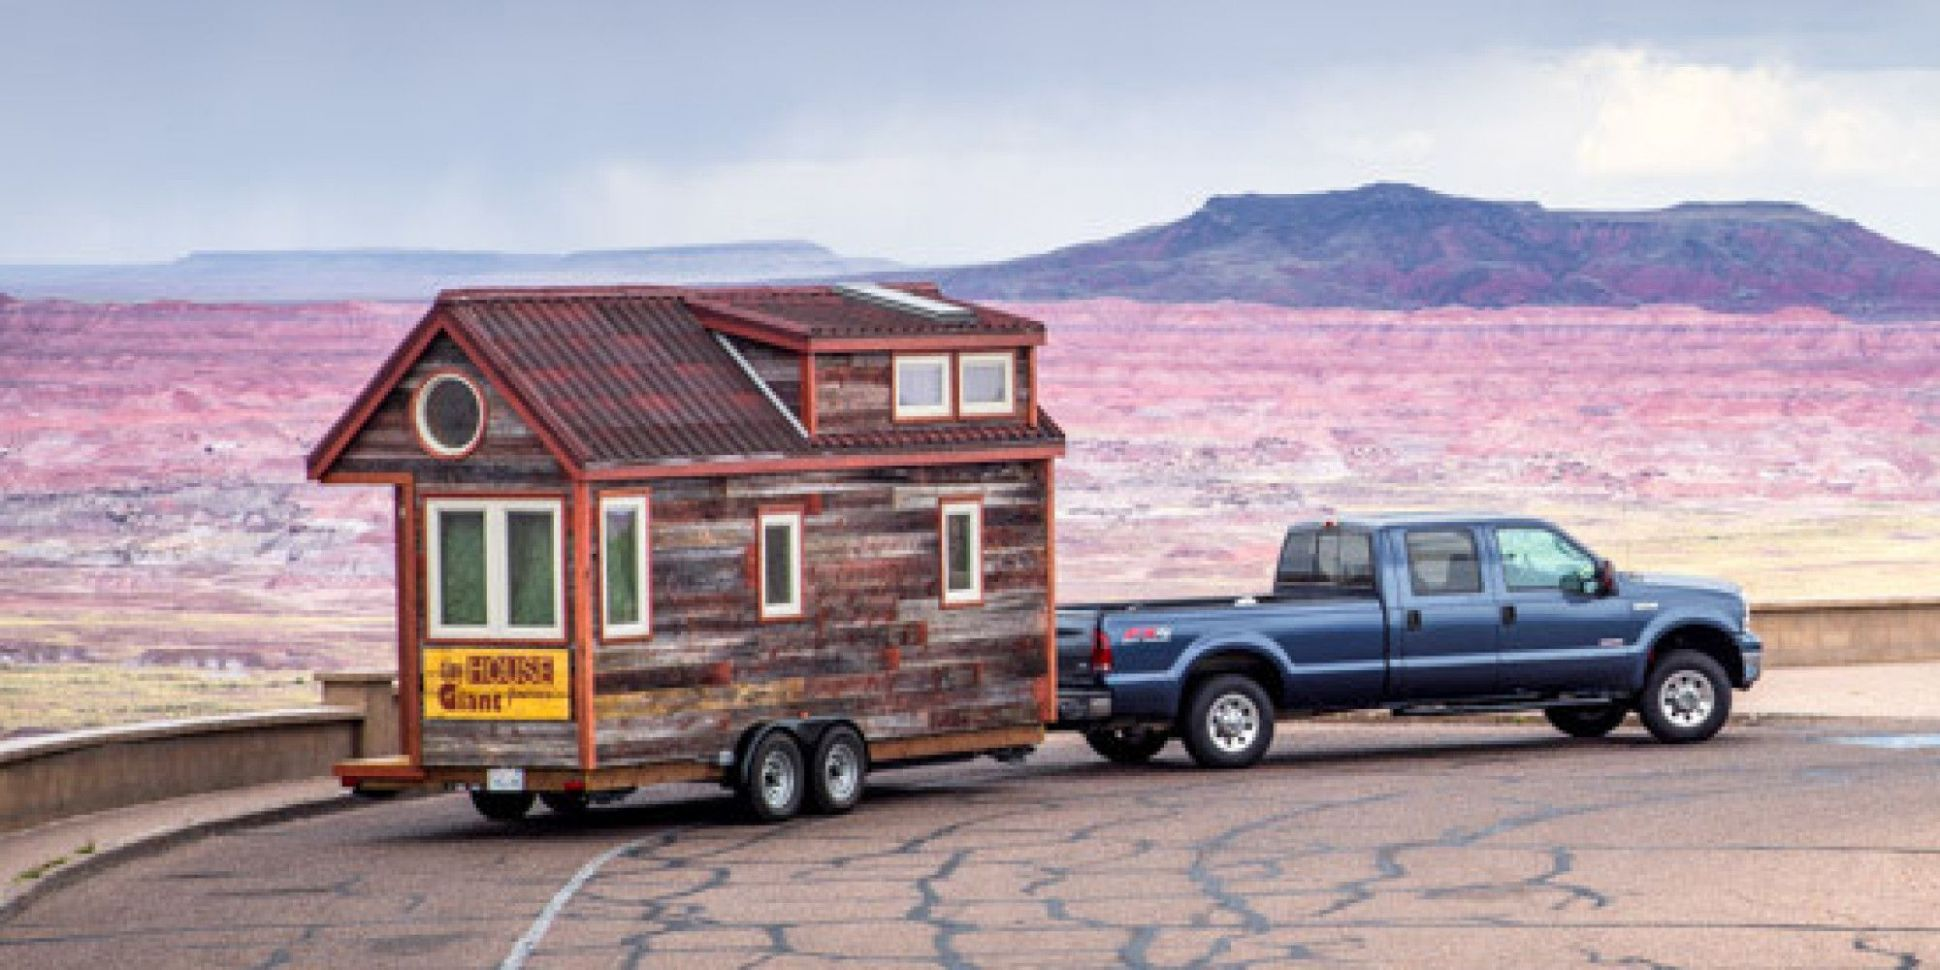 Couple Quits Day Jobs, Builds Quaint, Tiny Home On Wheels To ..